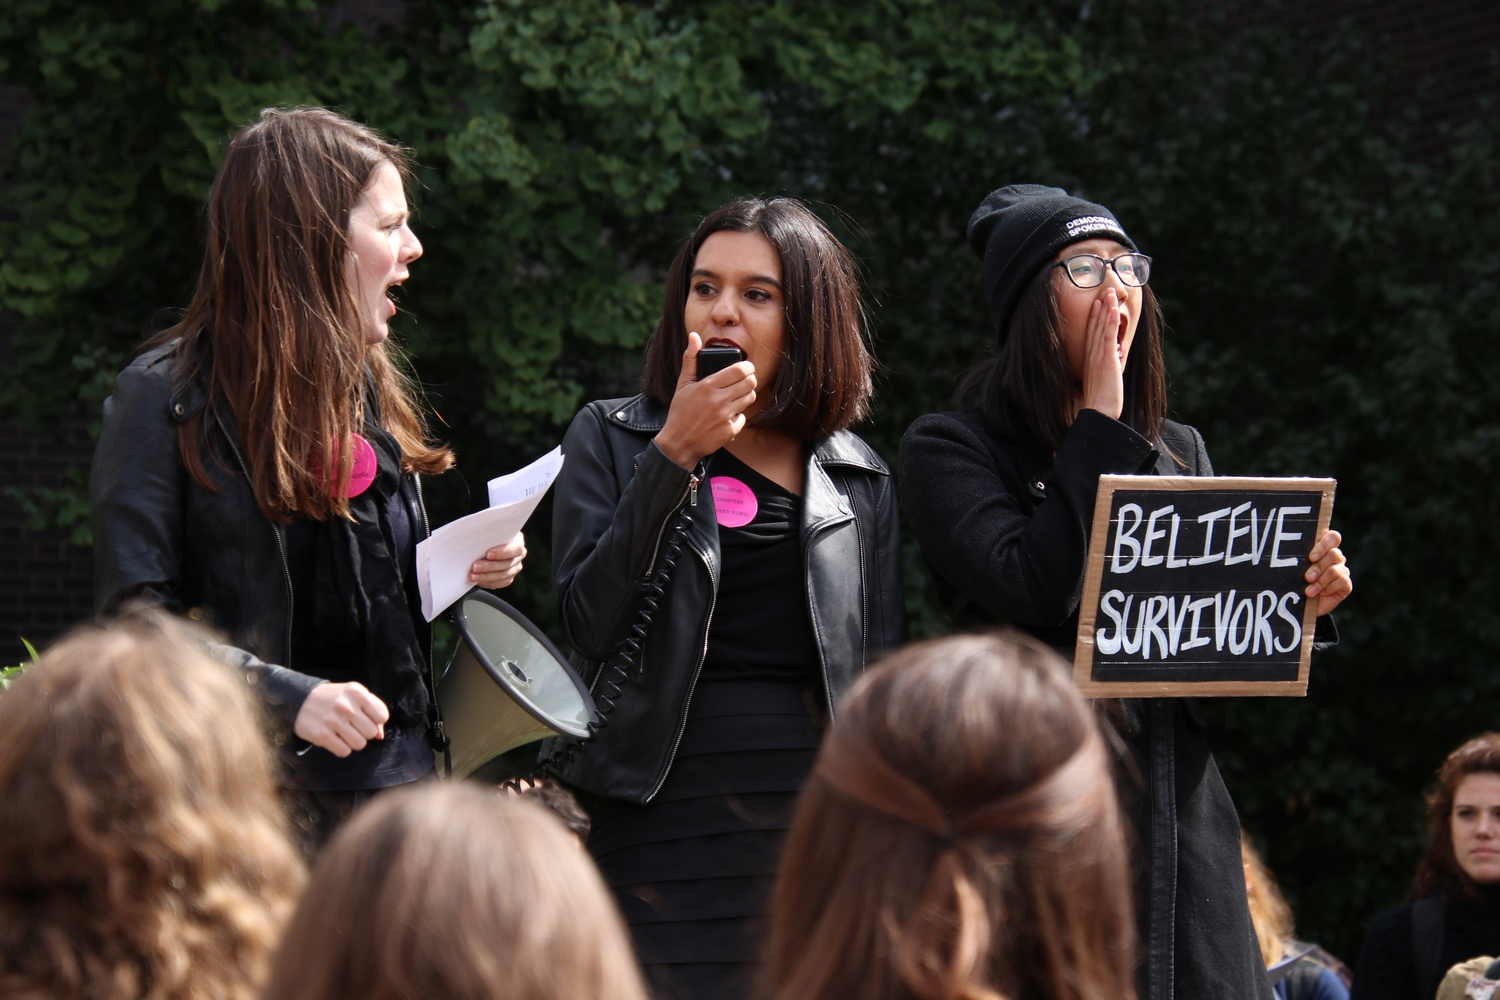 Harvard Law School students and members of the anti-harassment student advocacy group The People's Parity Project organized a walkout protesting the nomination of Brett M. Kavanaugh to the Supreme Court as he faced allegations of sexual assault.